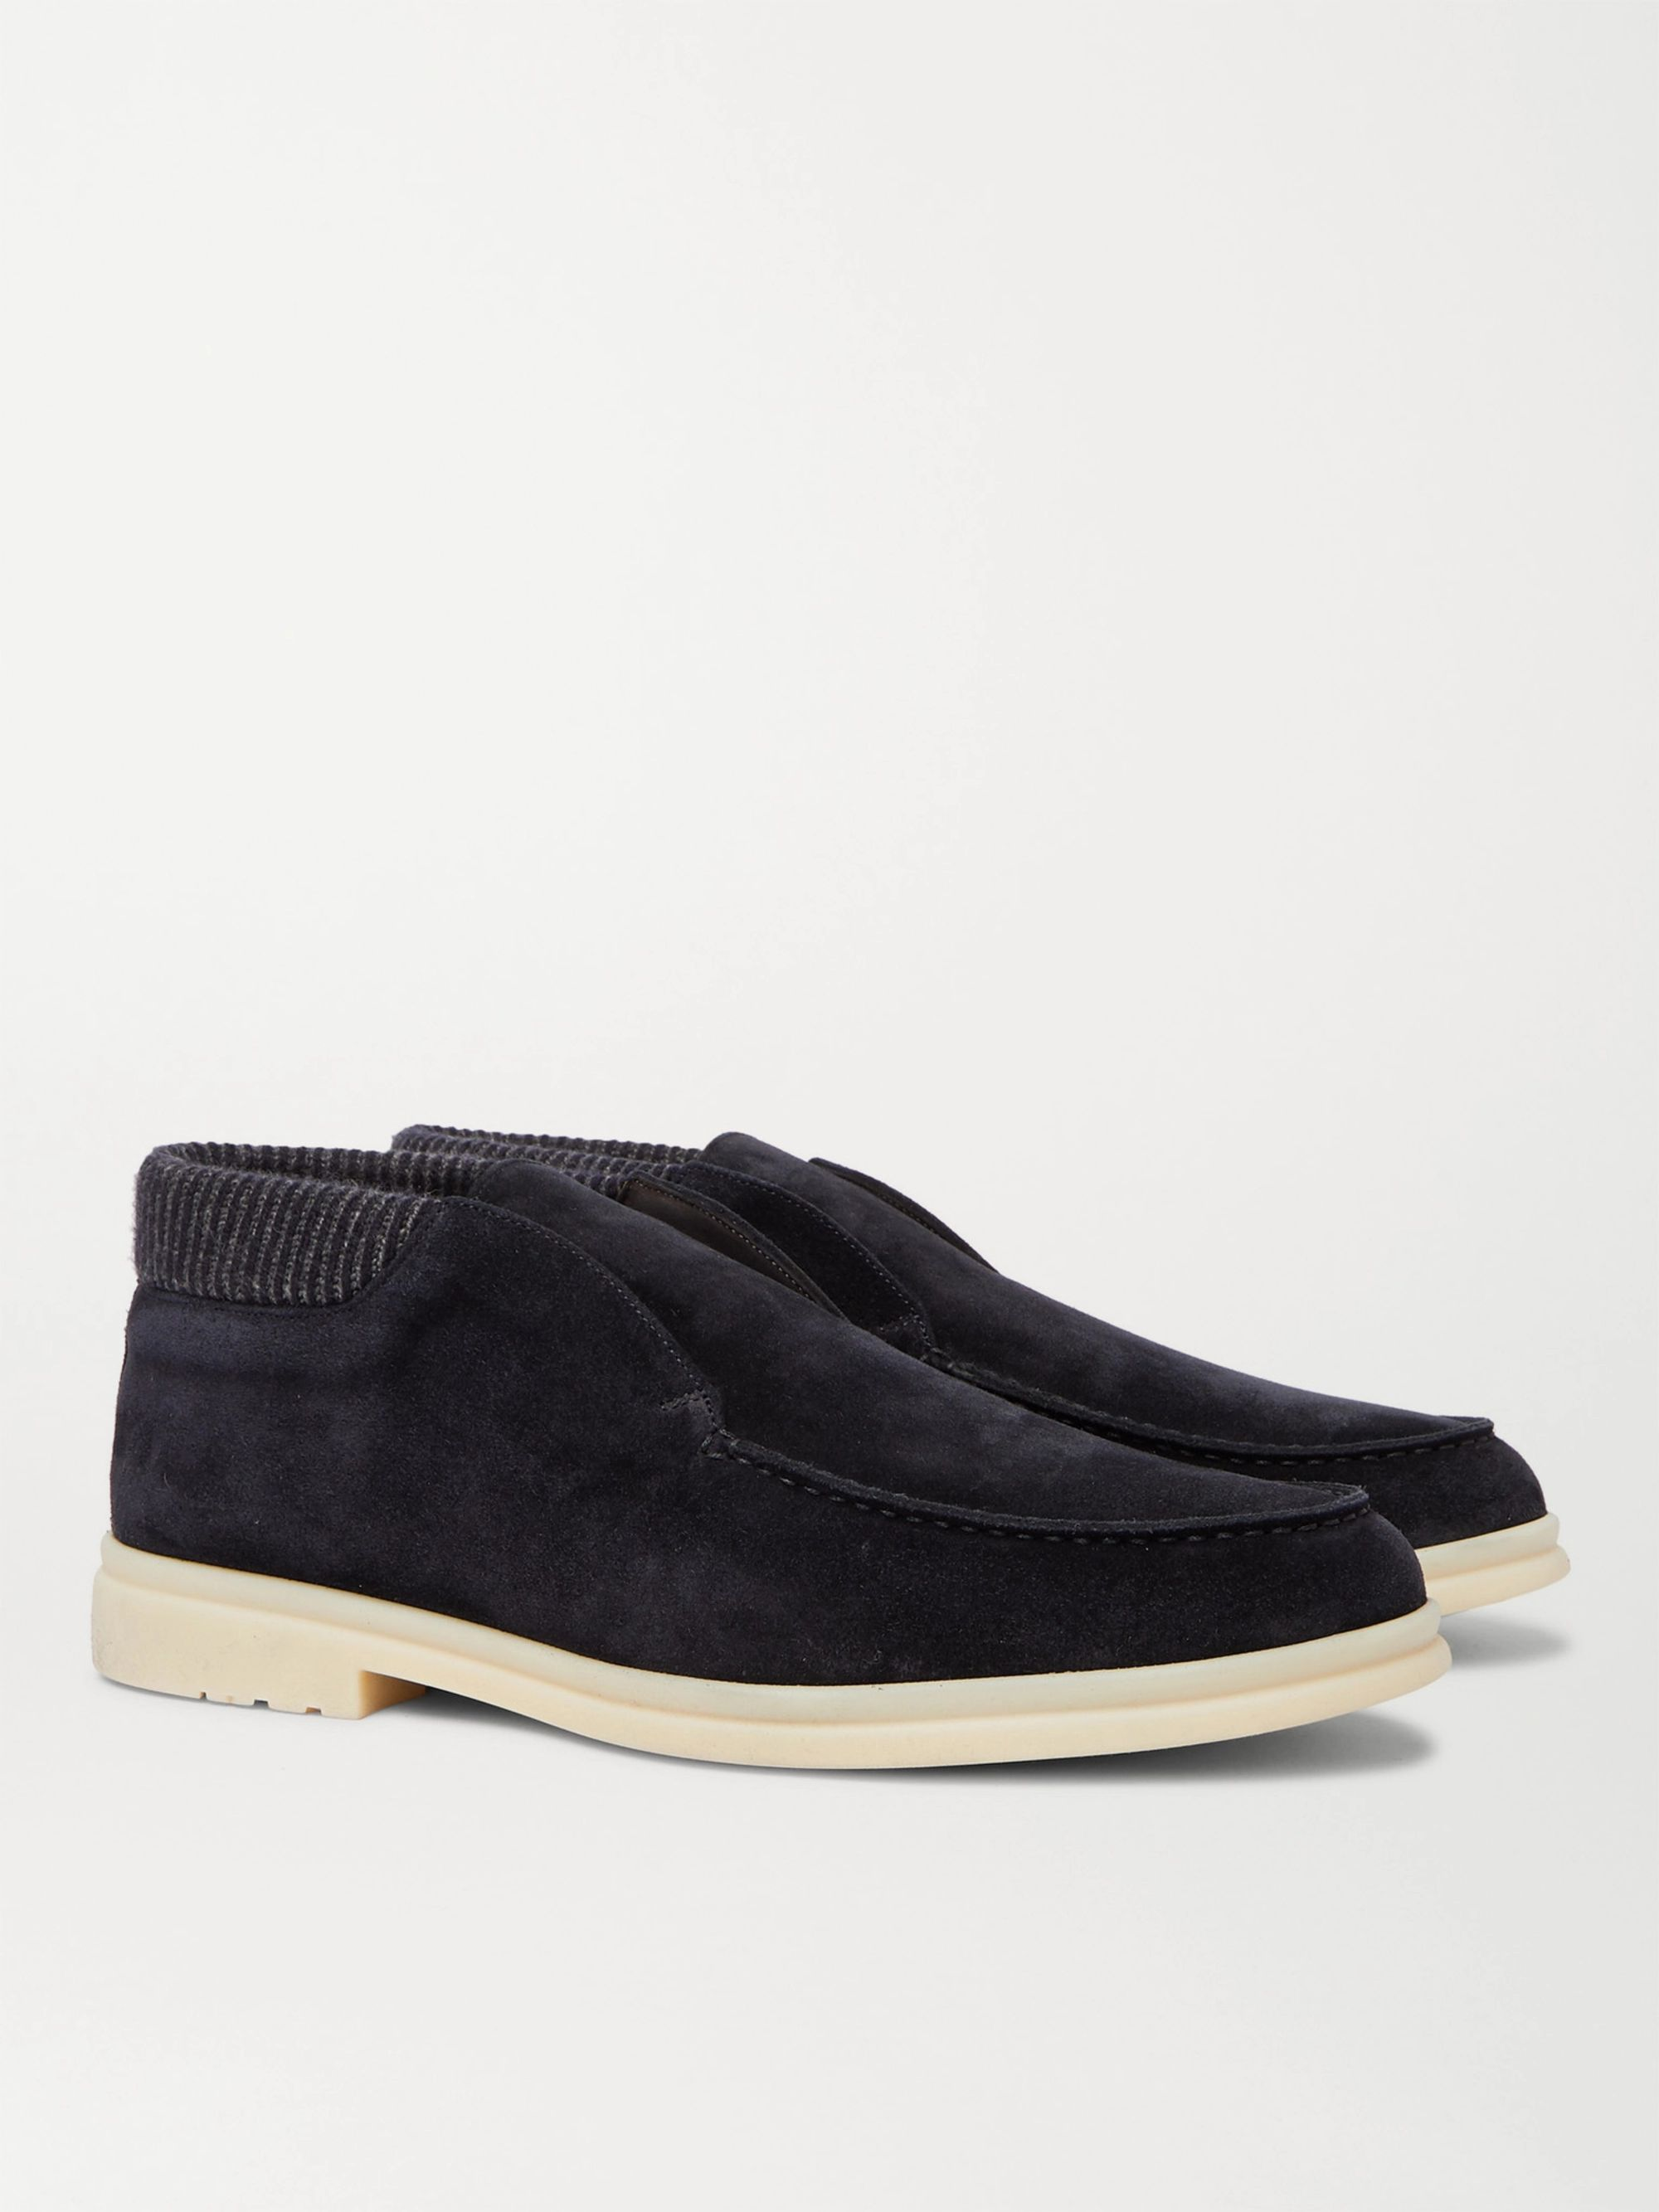 LORO PIANA Open Walk Winter Baby Cashmere-Trimmed Suede Desert Boots